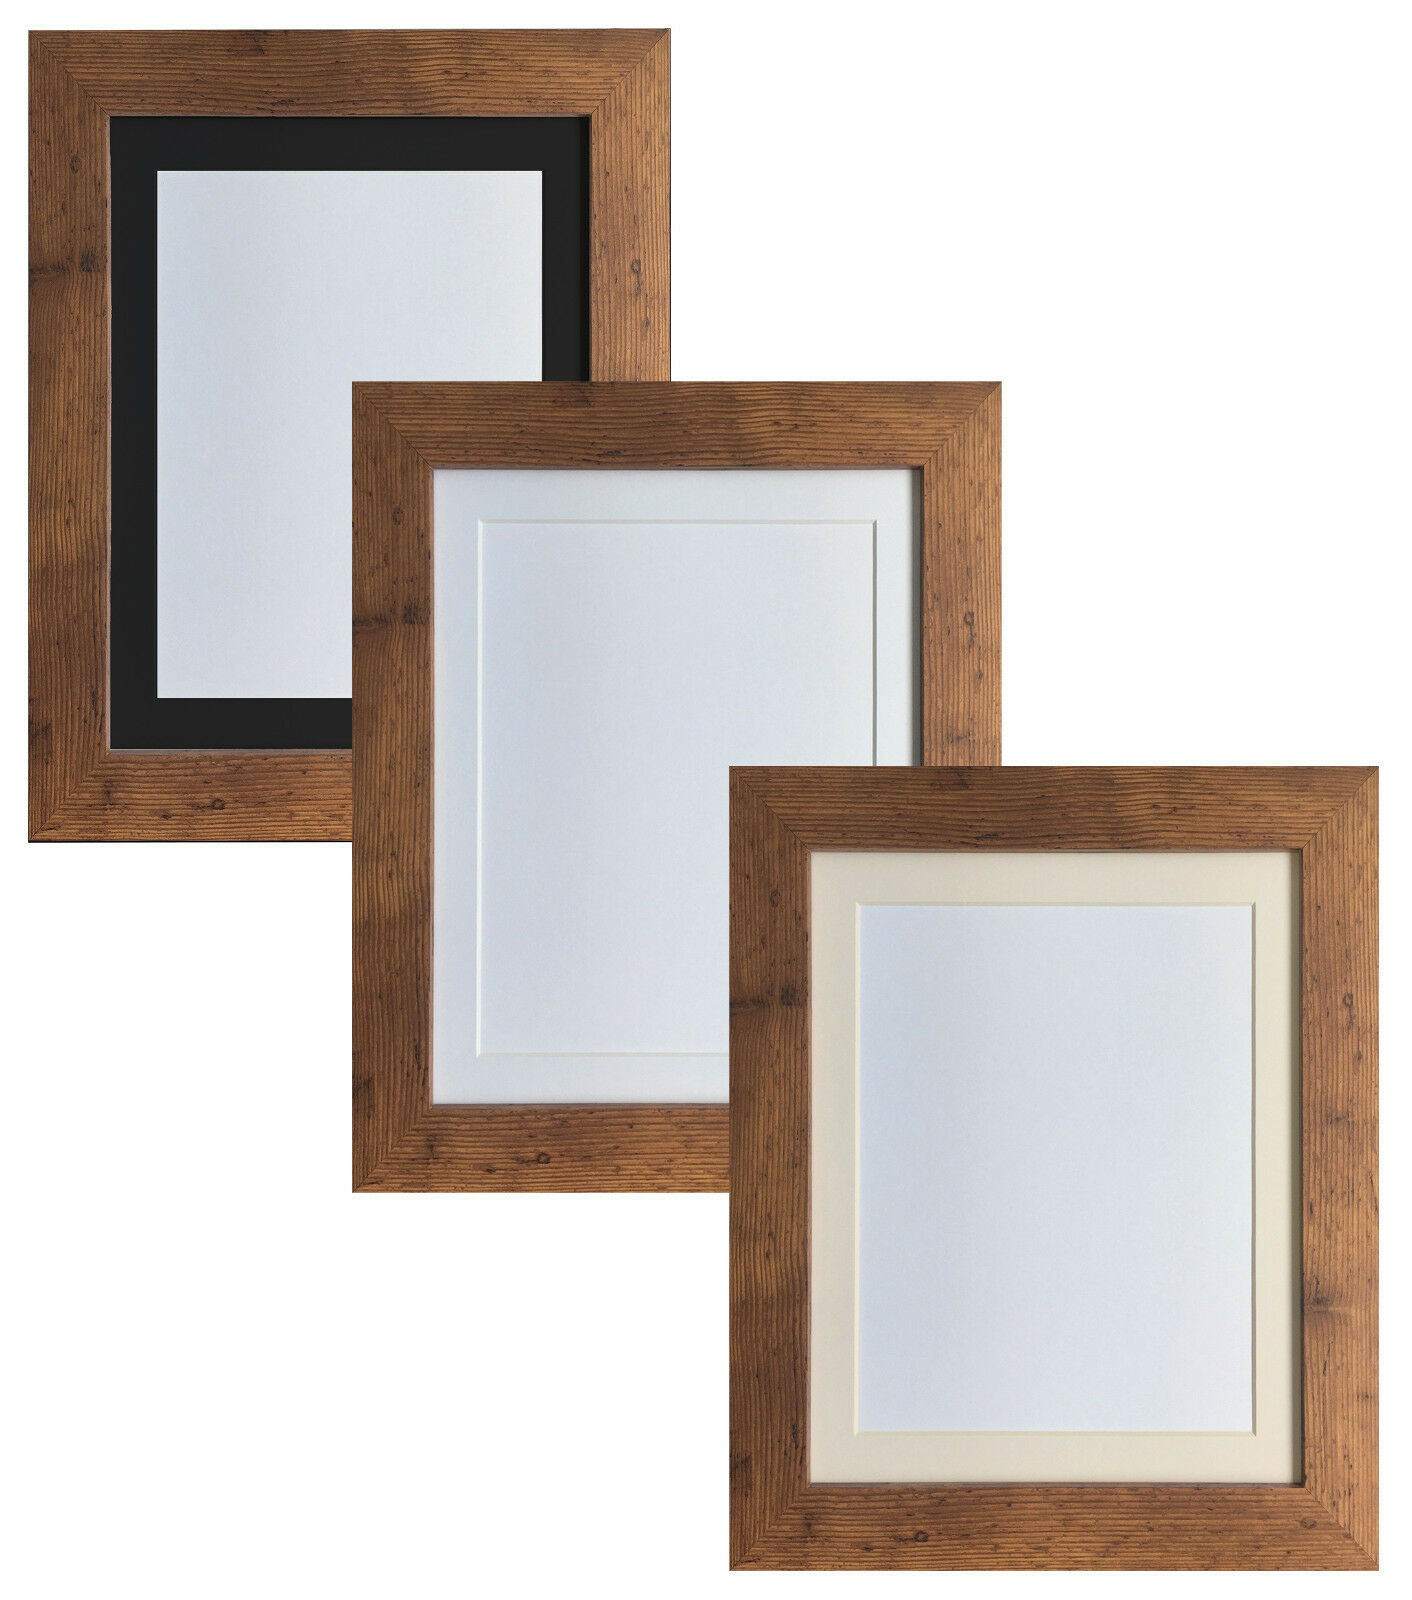 Metro Vintage Wood Picture Photo Frames With Black White